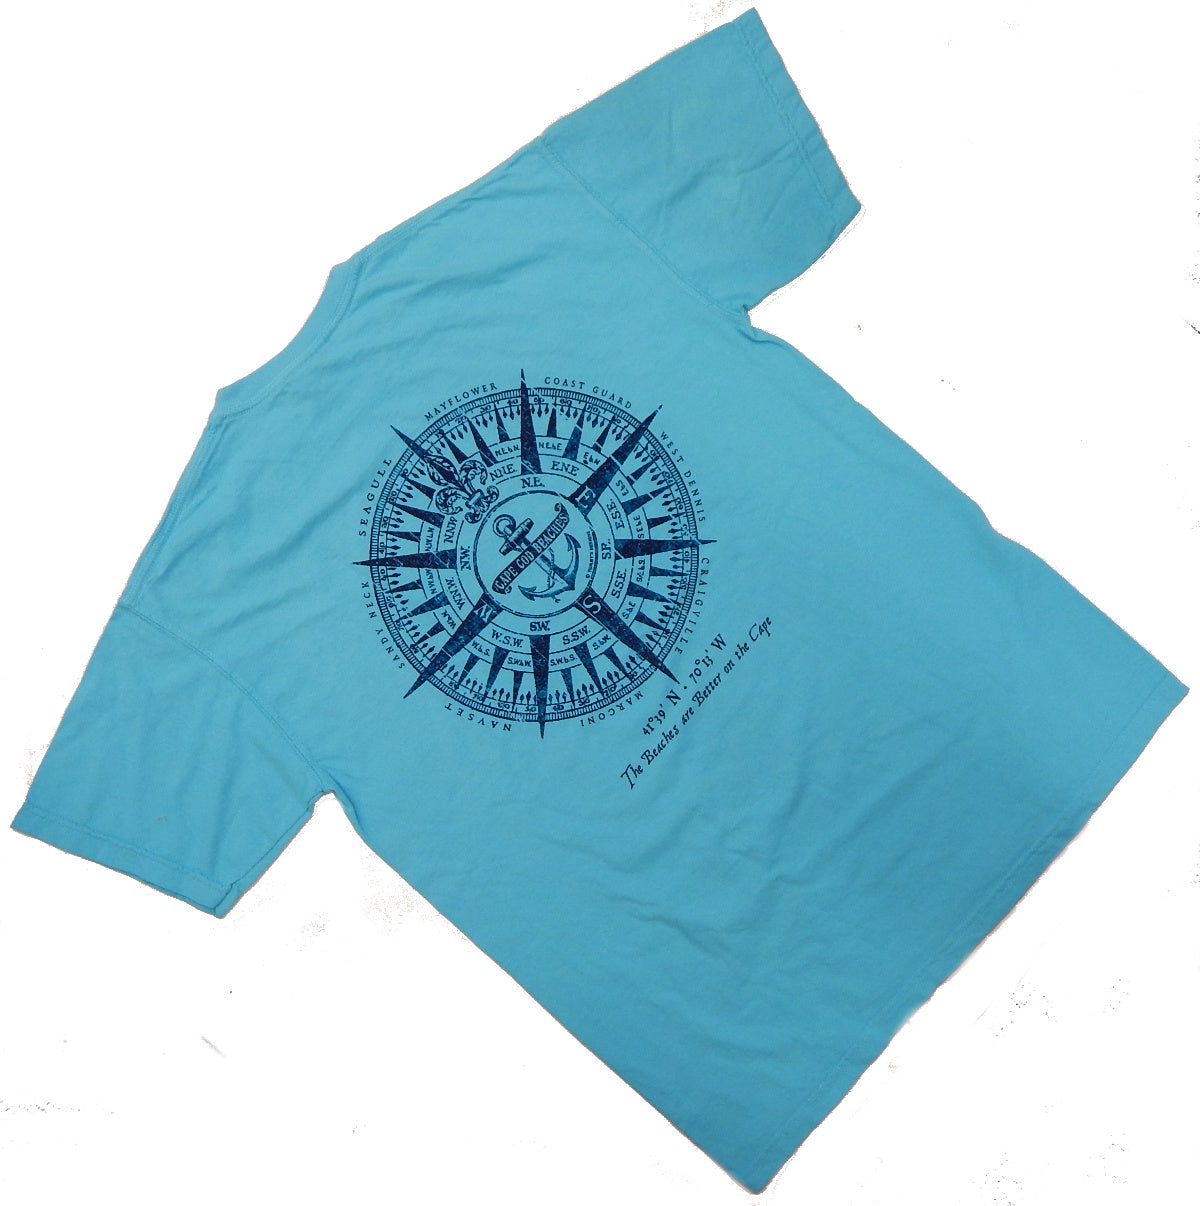 Beaches of Cape Cod<br>Pigment-Dyed Short Sleeve T-Shirt<br>by Tommy's Designs